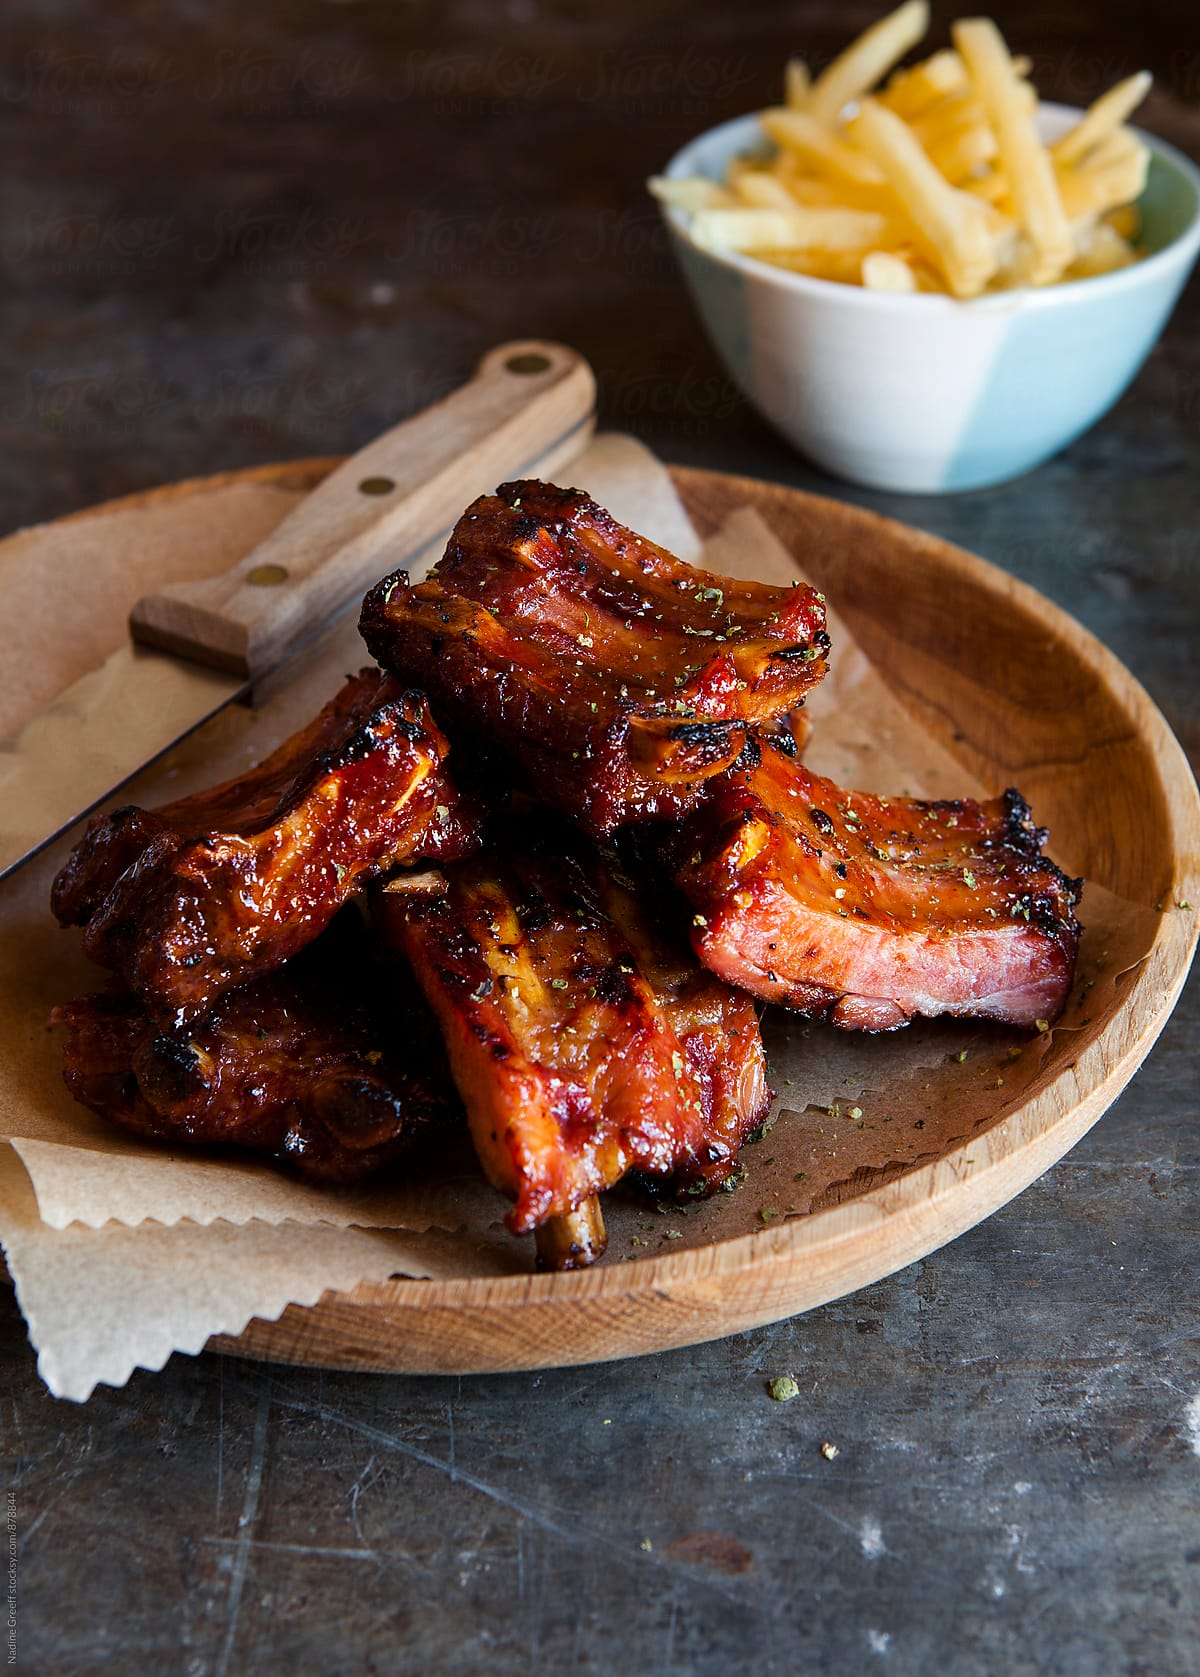 Stock Photo - Sticky Bbq Ribs With Fries